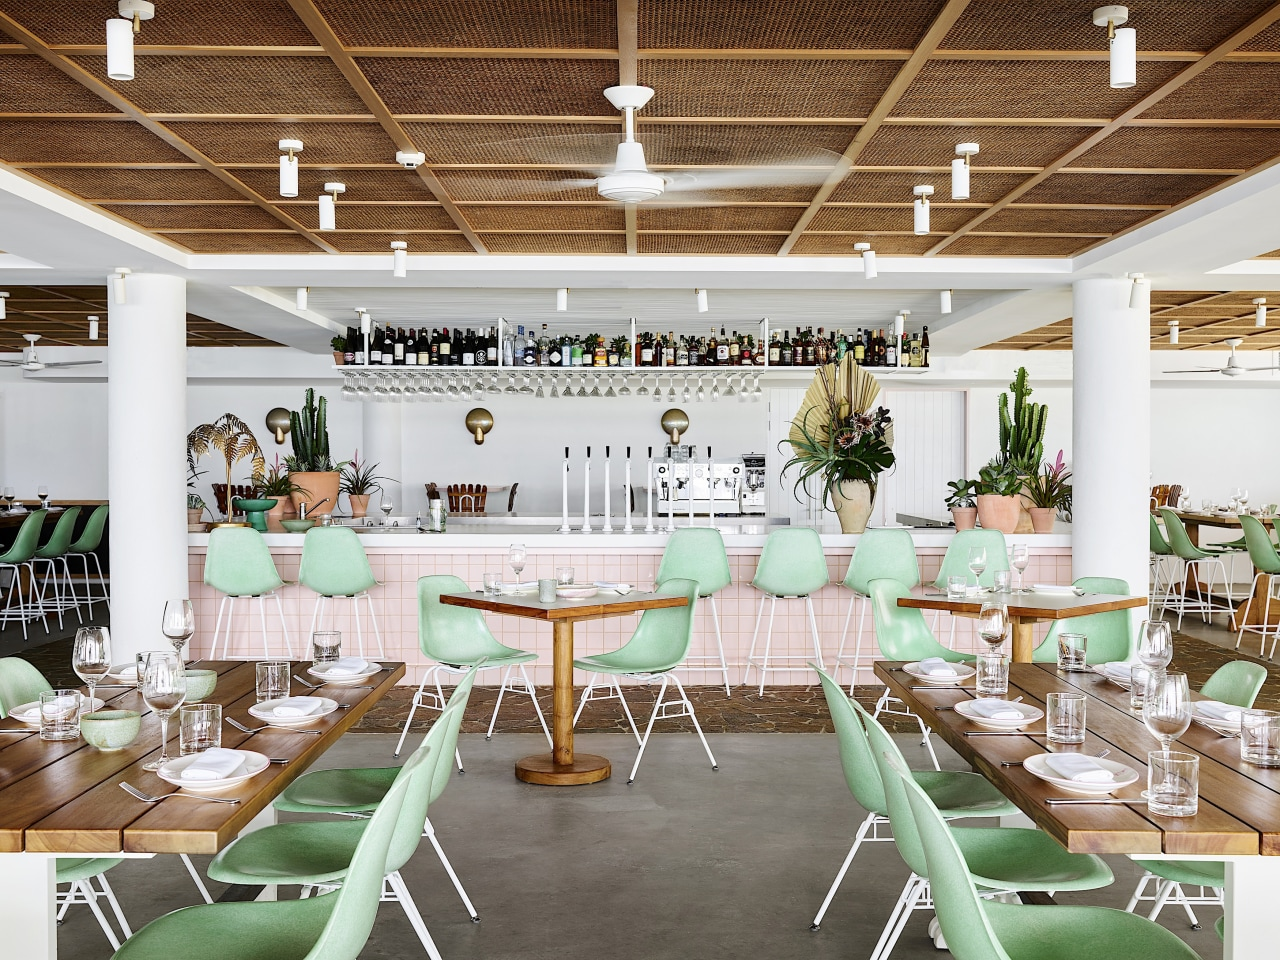 The Tropic restaurant at Burleigh Heads Pavilion exudes